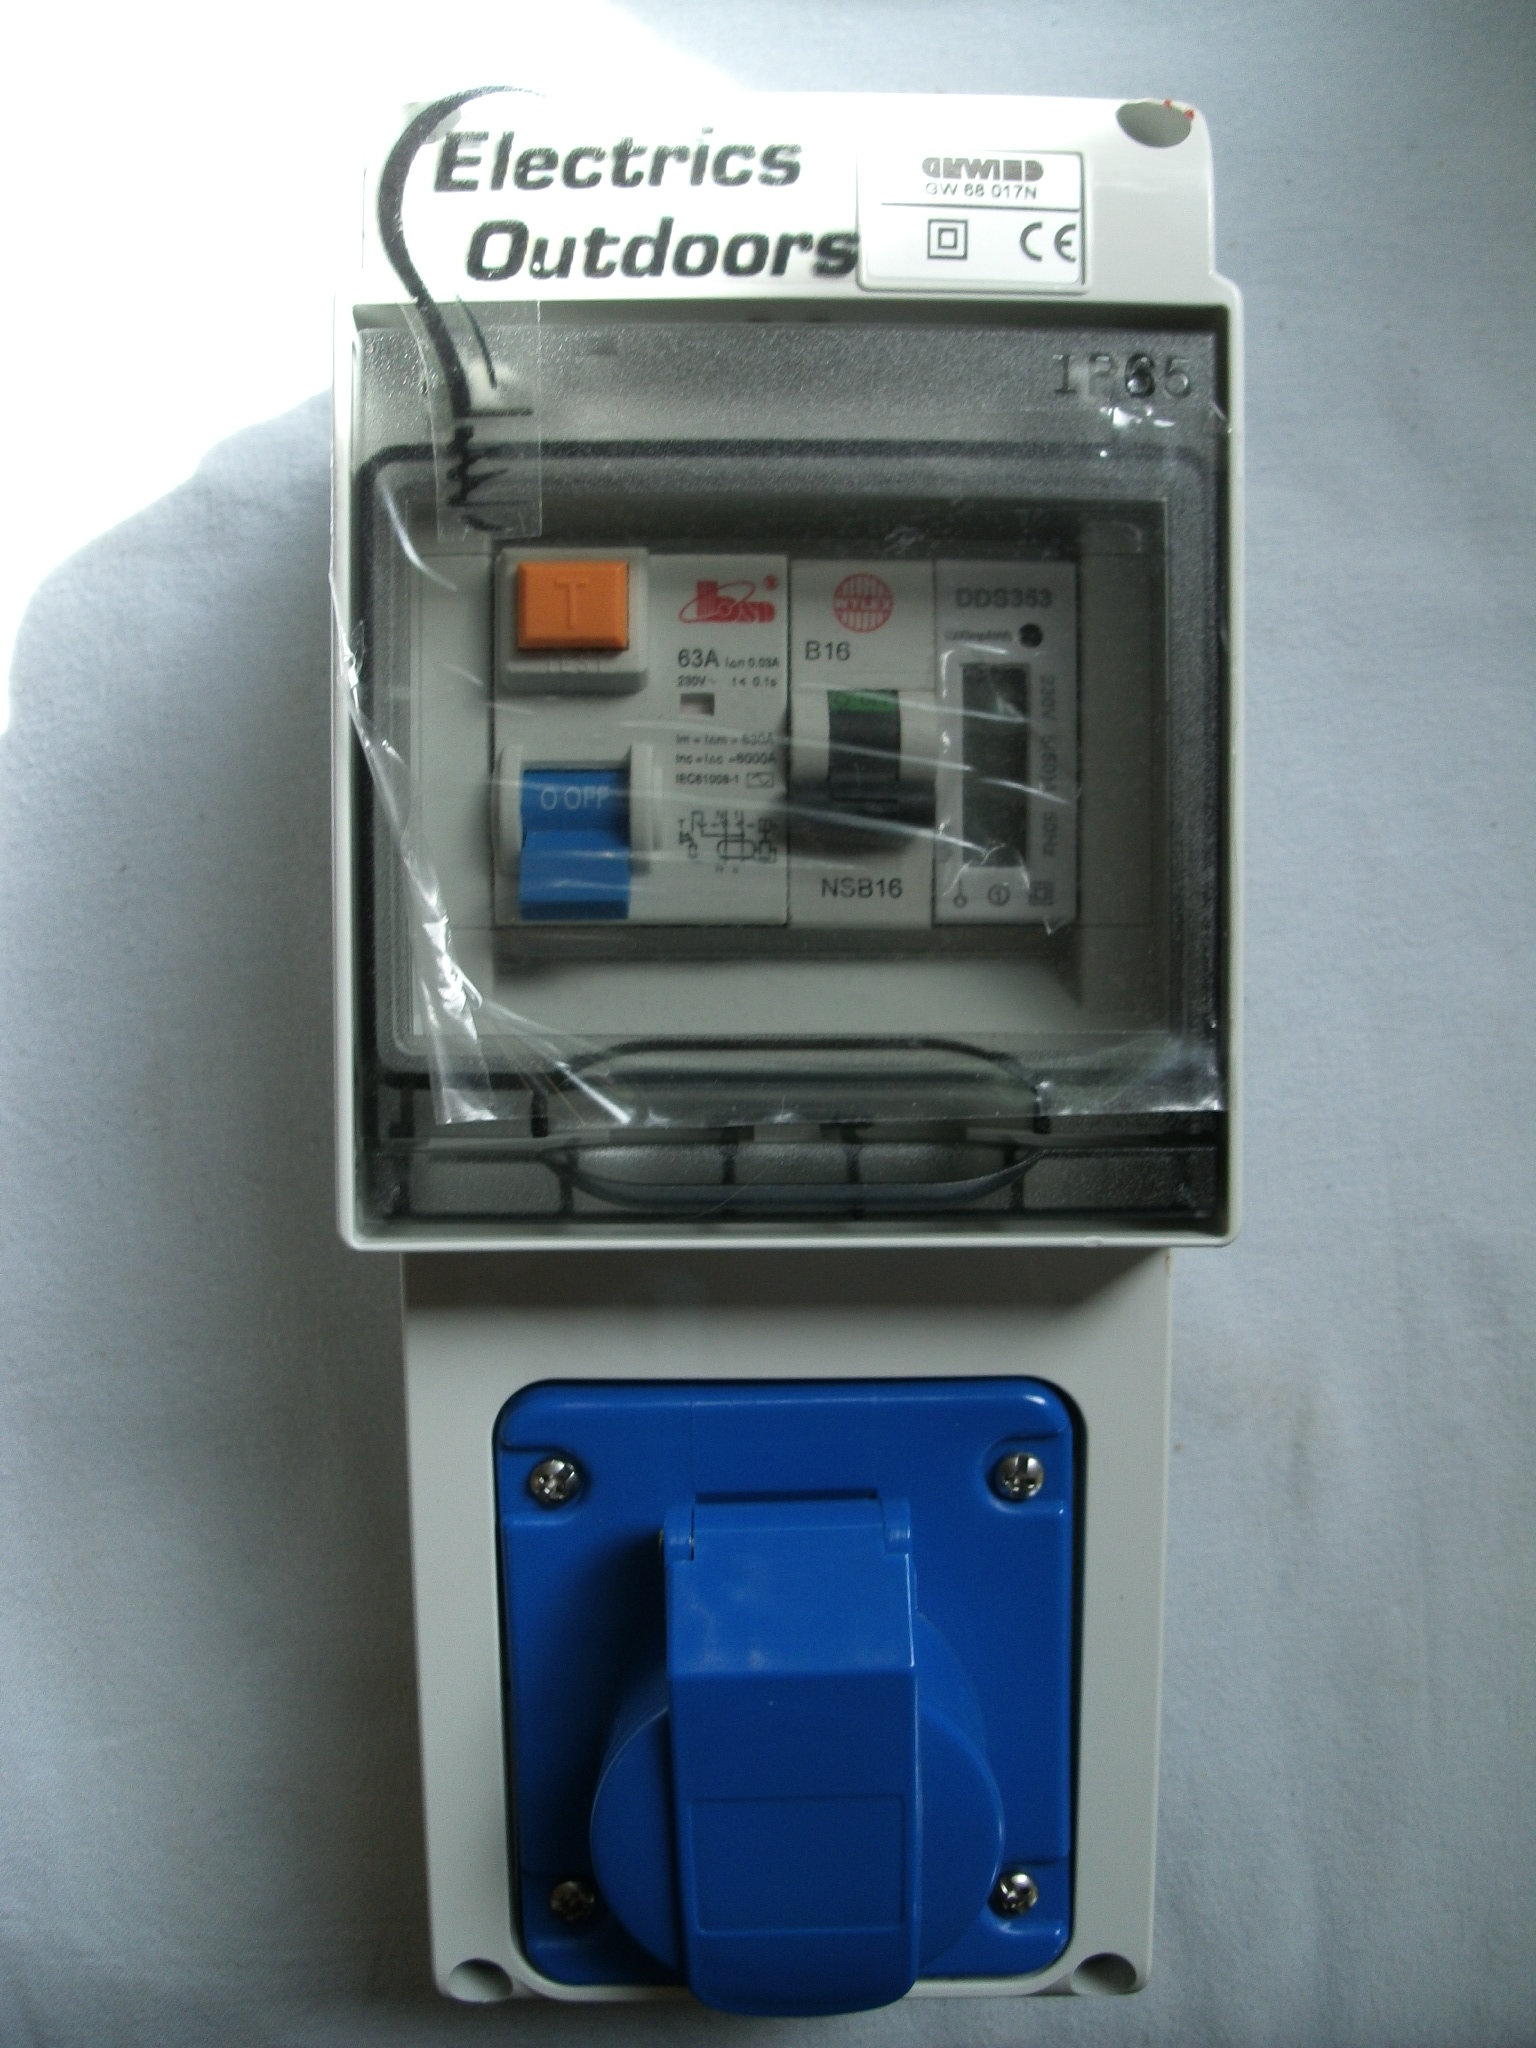 1 WAY METERED CARAVAN HOOKUP PITCH SUPPLY BOX BLUE 16 AMP MCB RCD 50 A KwH METER